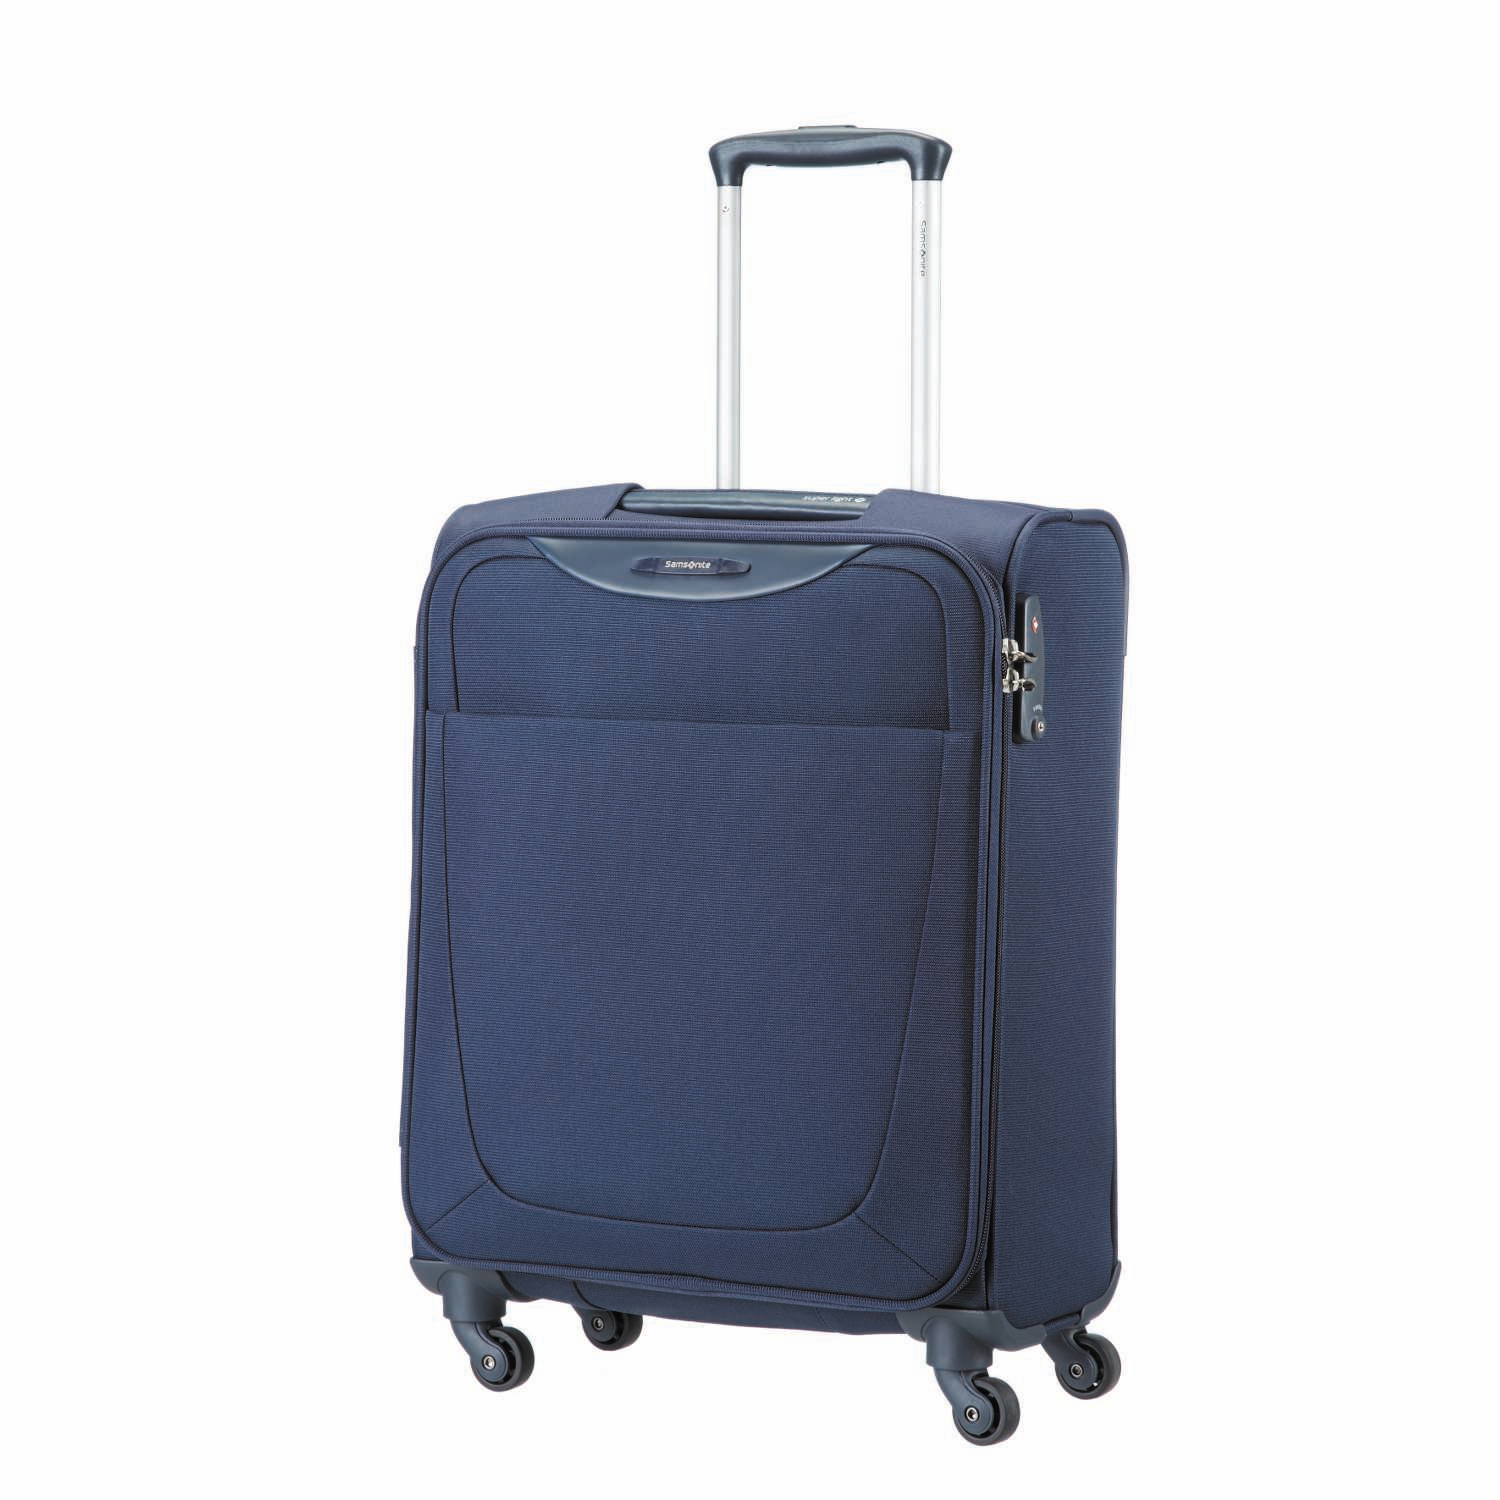 SAMSONITE (TRAVEL) – Βαλίτσα BASEHITS SPINNER 55/20 Samsonite μπλε